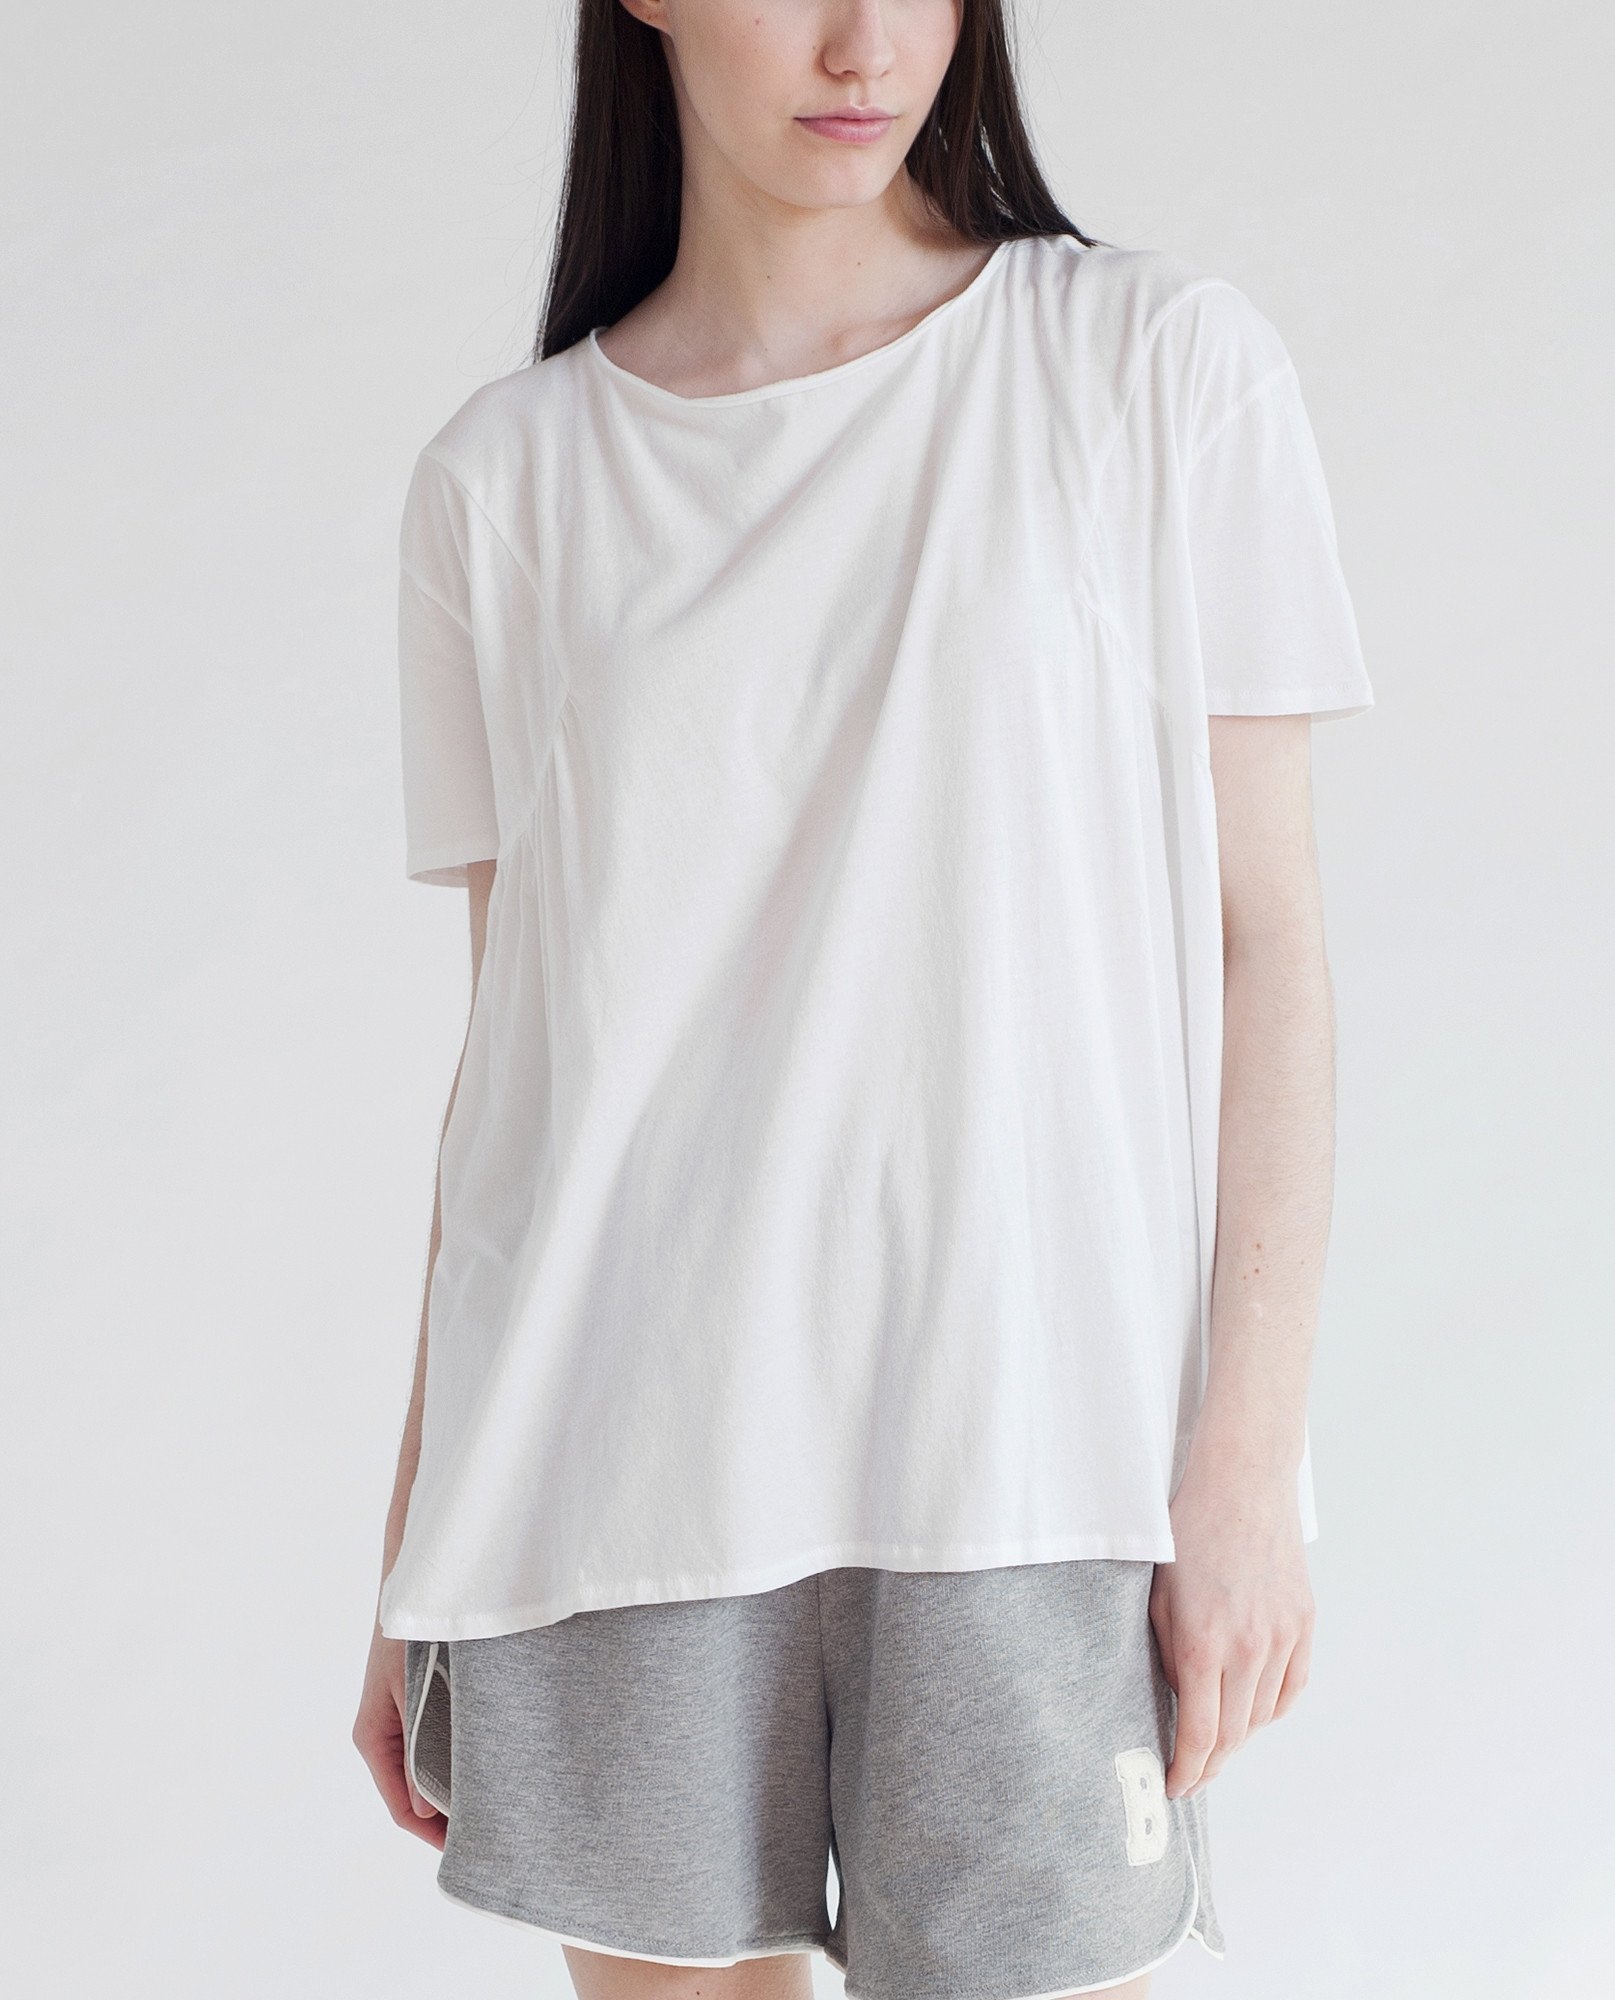 HOLLY Organic Cotton Top from Beaumont Organic